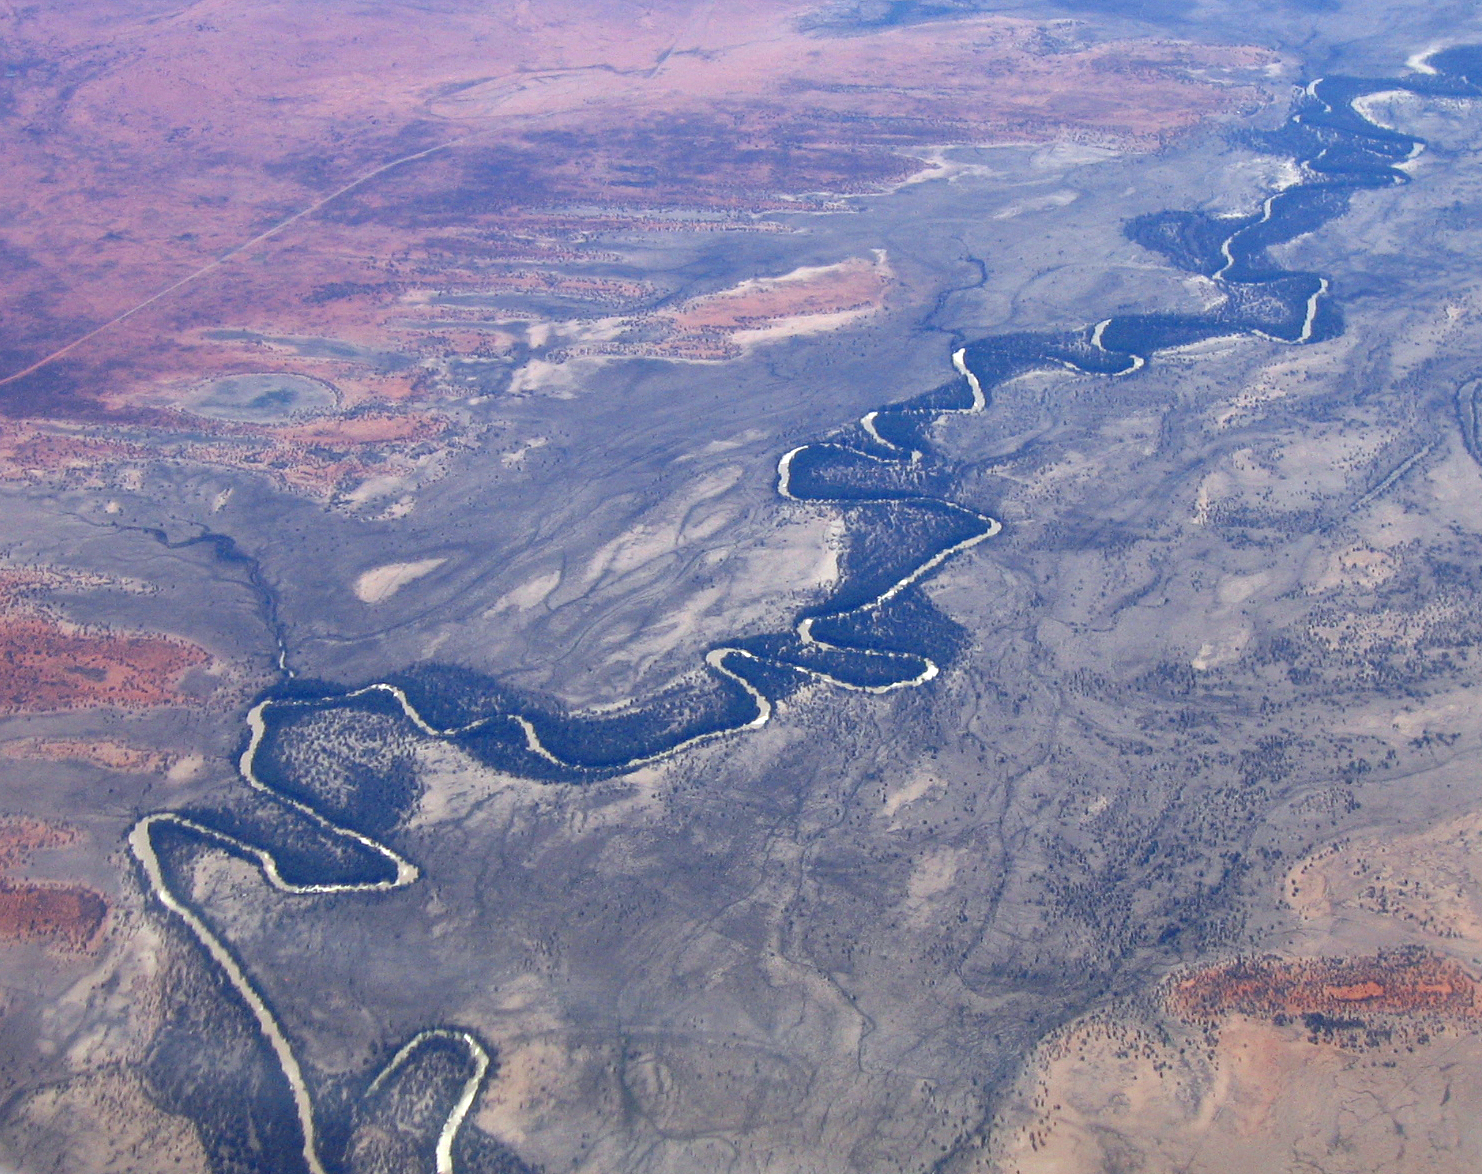 Aerial photo of the Darling River